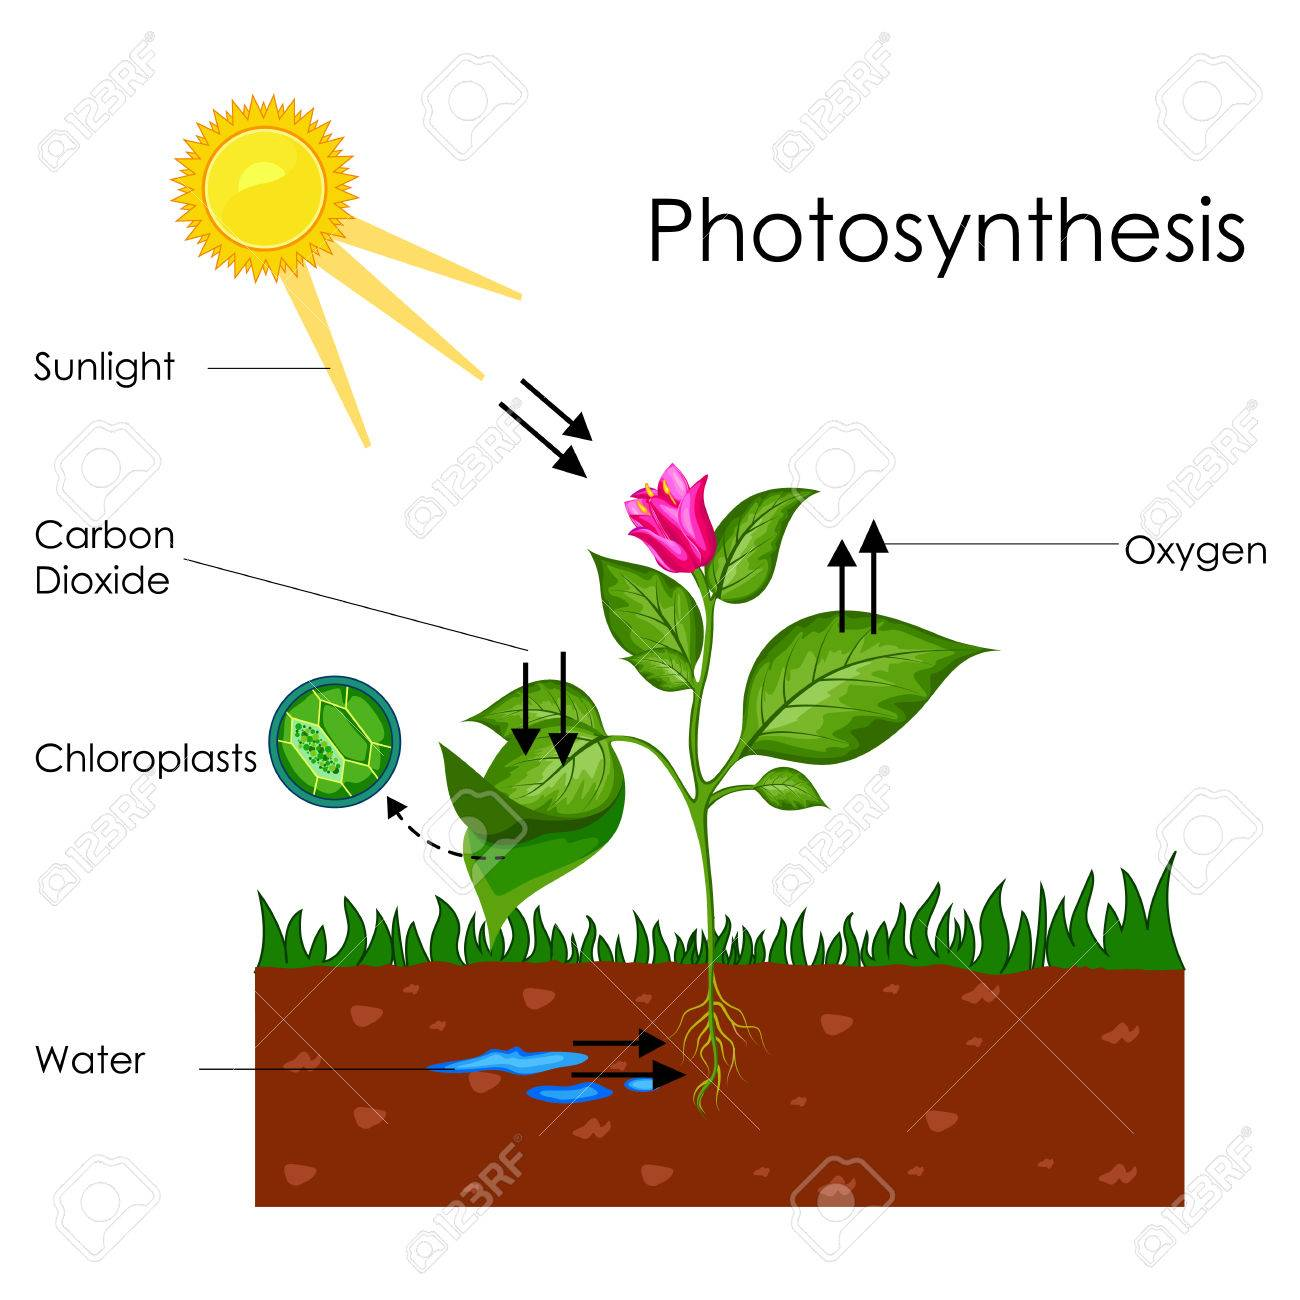 Education Chart Of Biology For Photosynthesis Process Diagram Stock Photo Picture And Royalty Free Image Image 80713897 By science and technology concepts middle school. education chart of biology for photosynthesis process diagram